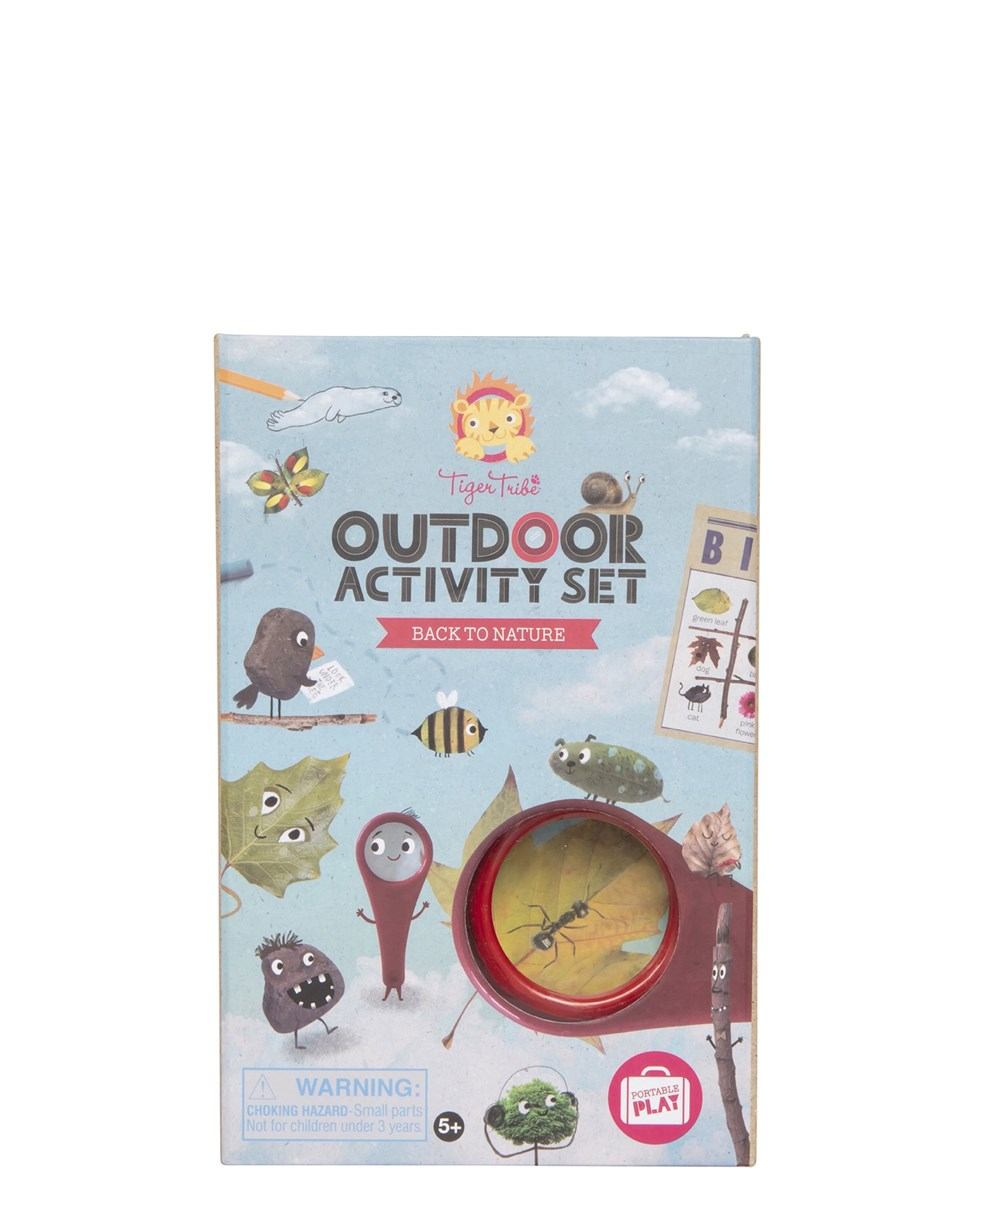 Tiger Tribe Outdoor Activity Set - Back to Nature